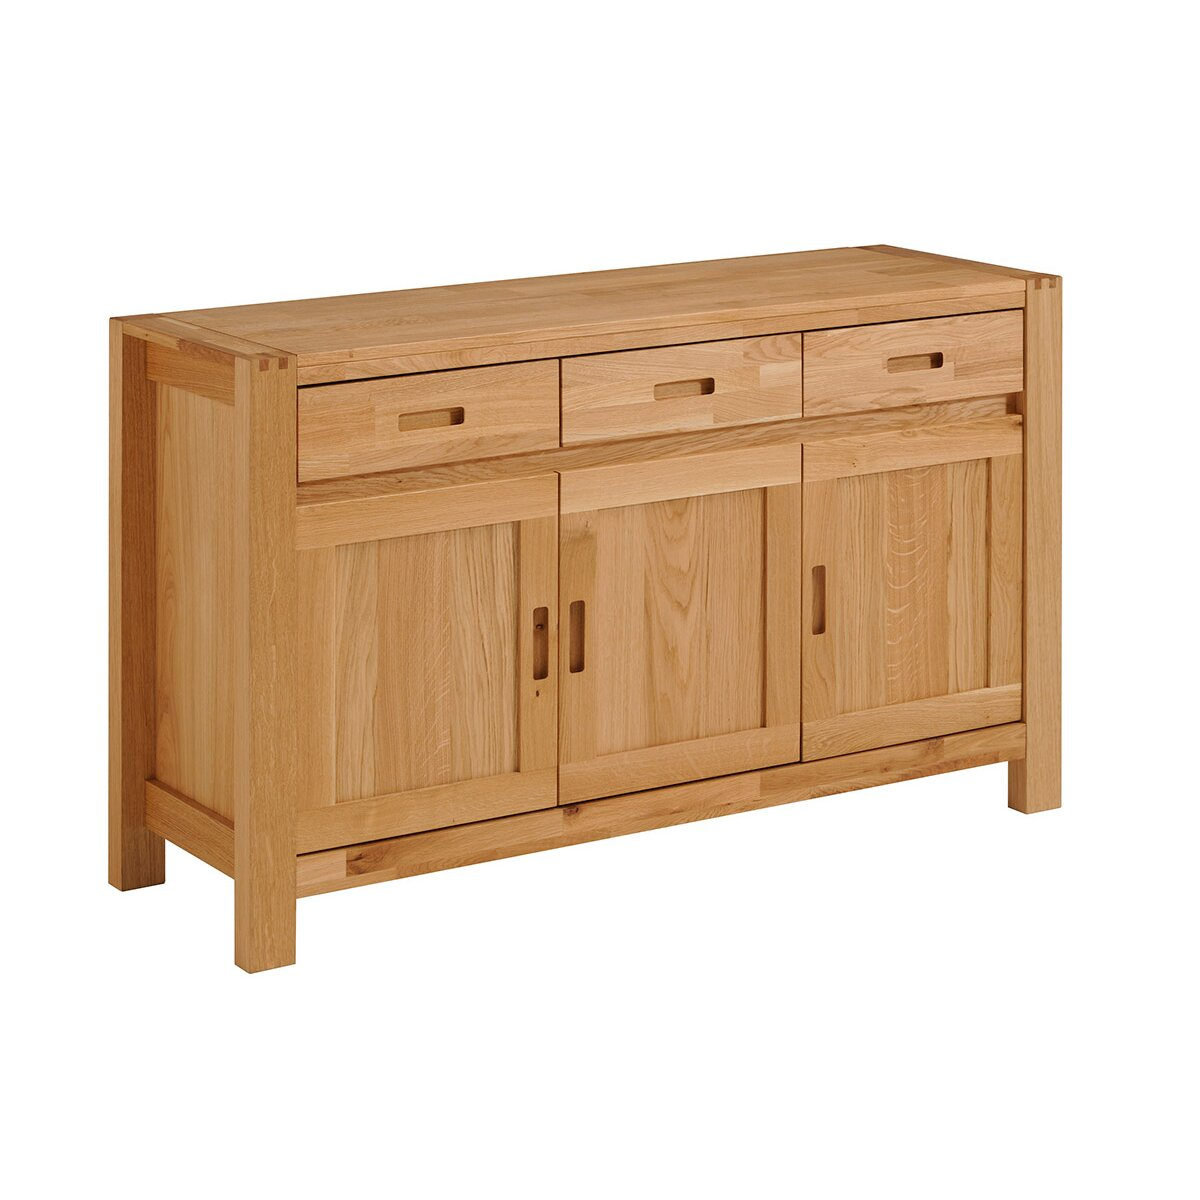 Parisot ethan sideboard reviews wayfair for Bahut salle a manger